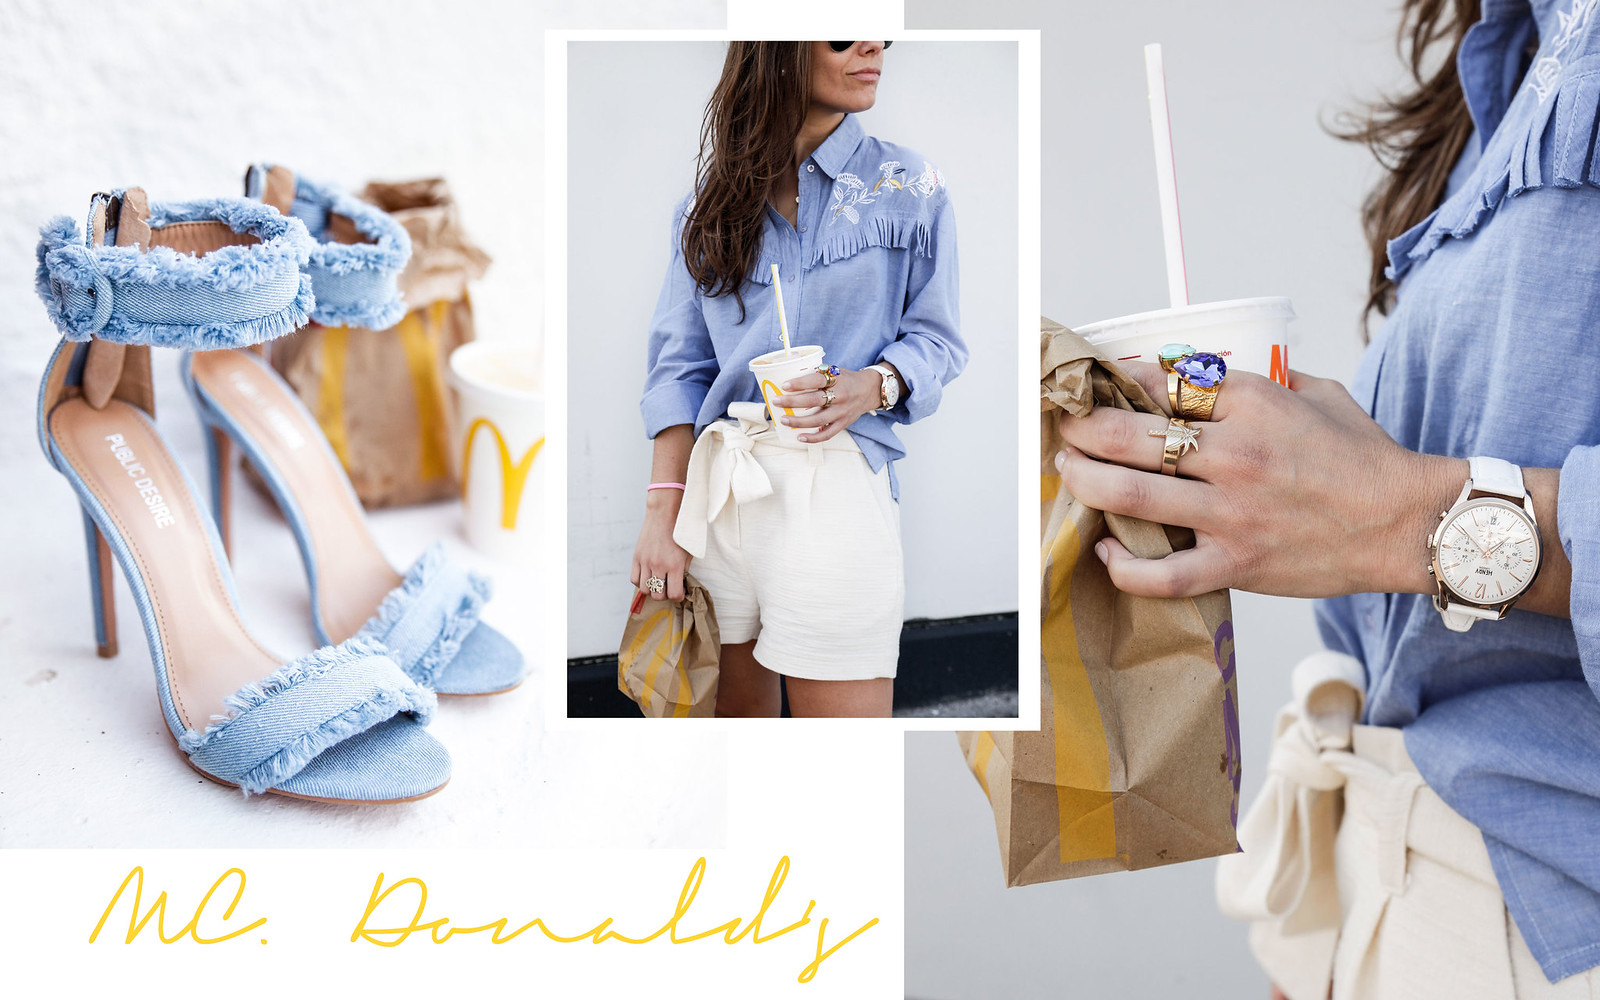 011_camisa_flecos_azul_mysundaymorning_fringed_shirt_fringed_theguestgirl_influencer_inspo_outft_summer_laura_santolaria_public_desire_denim_shoes_mc_donalds